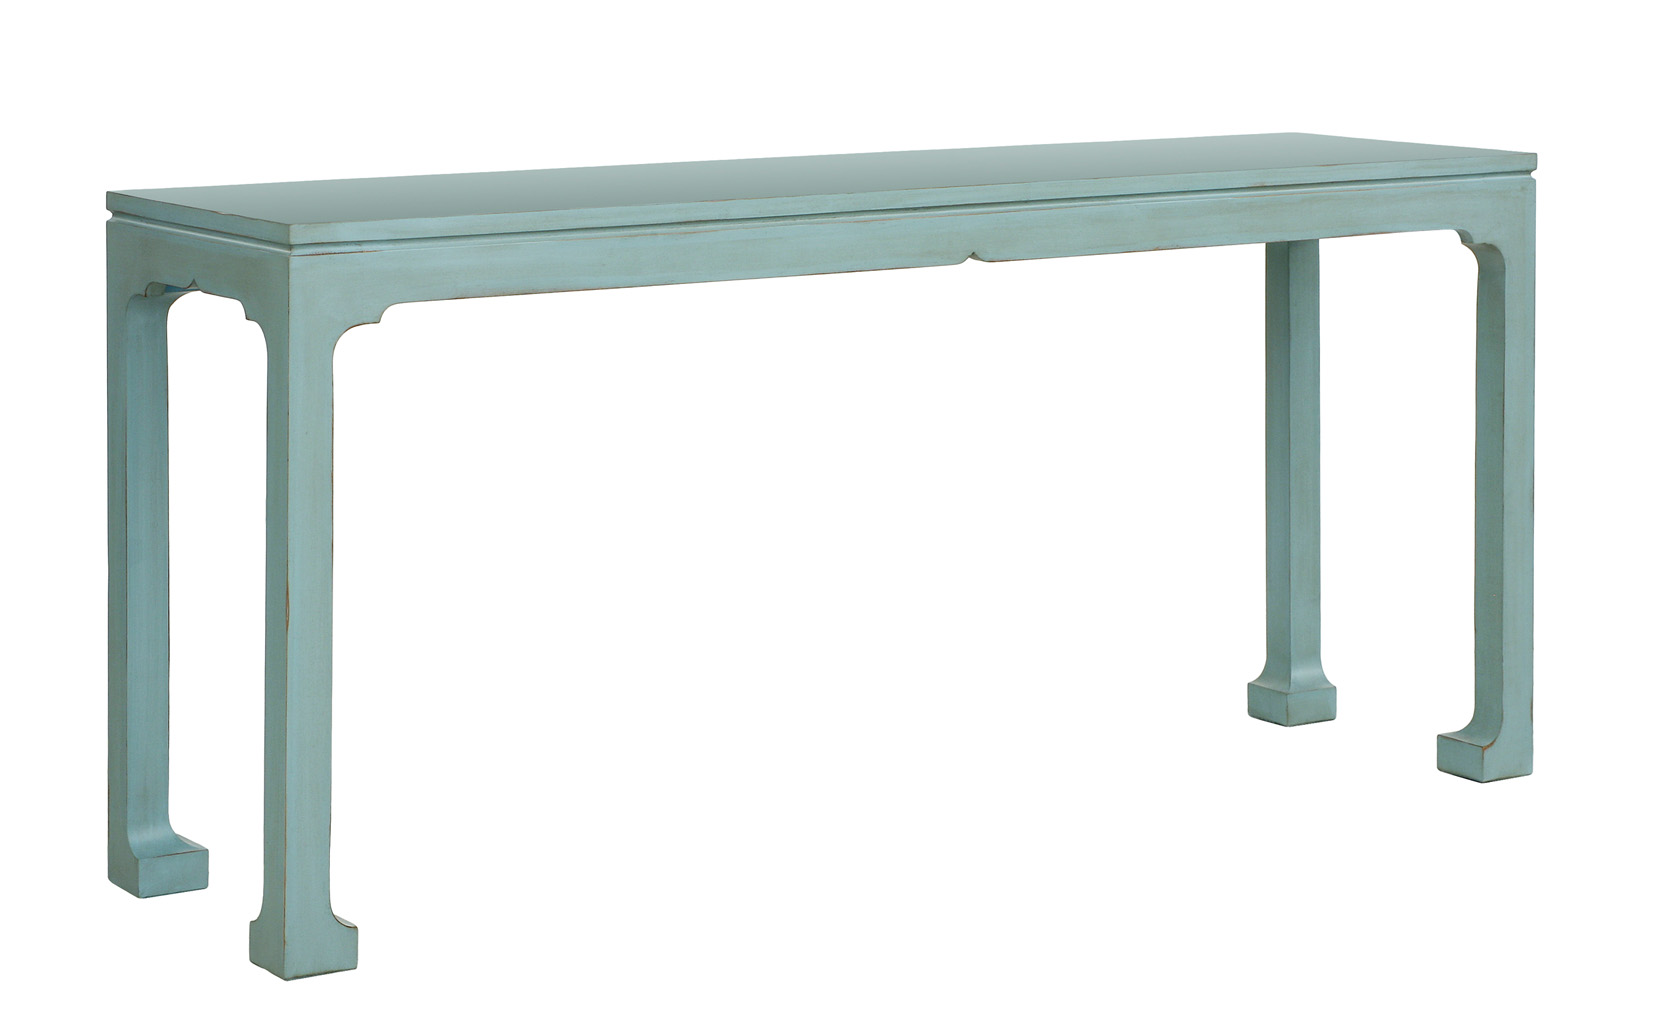 Console Tables Are Perfect For Placing In Any Room photo - 2